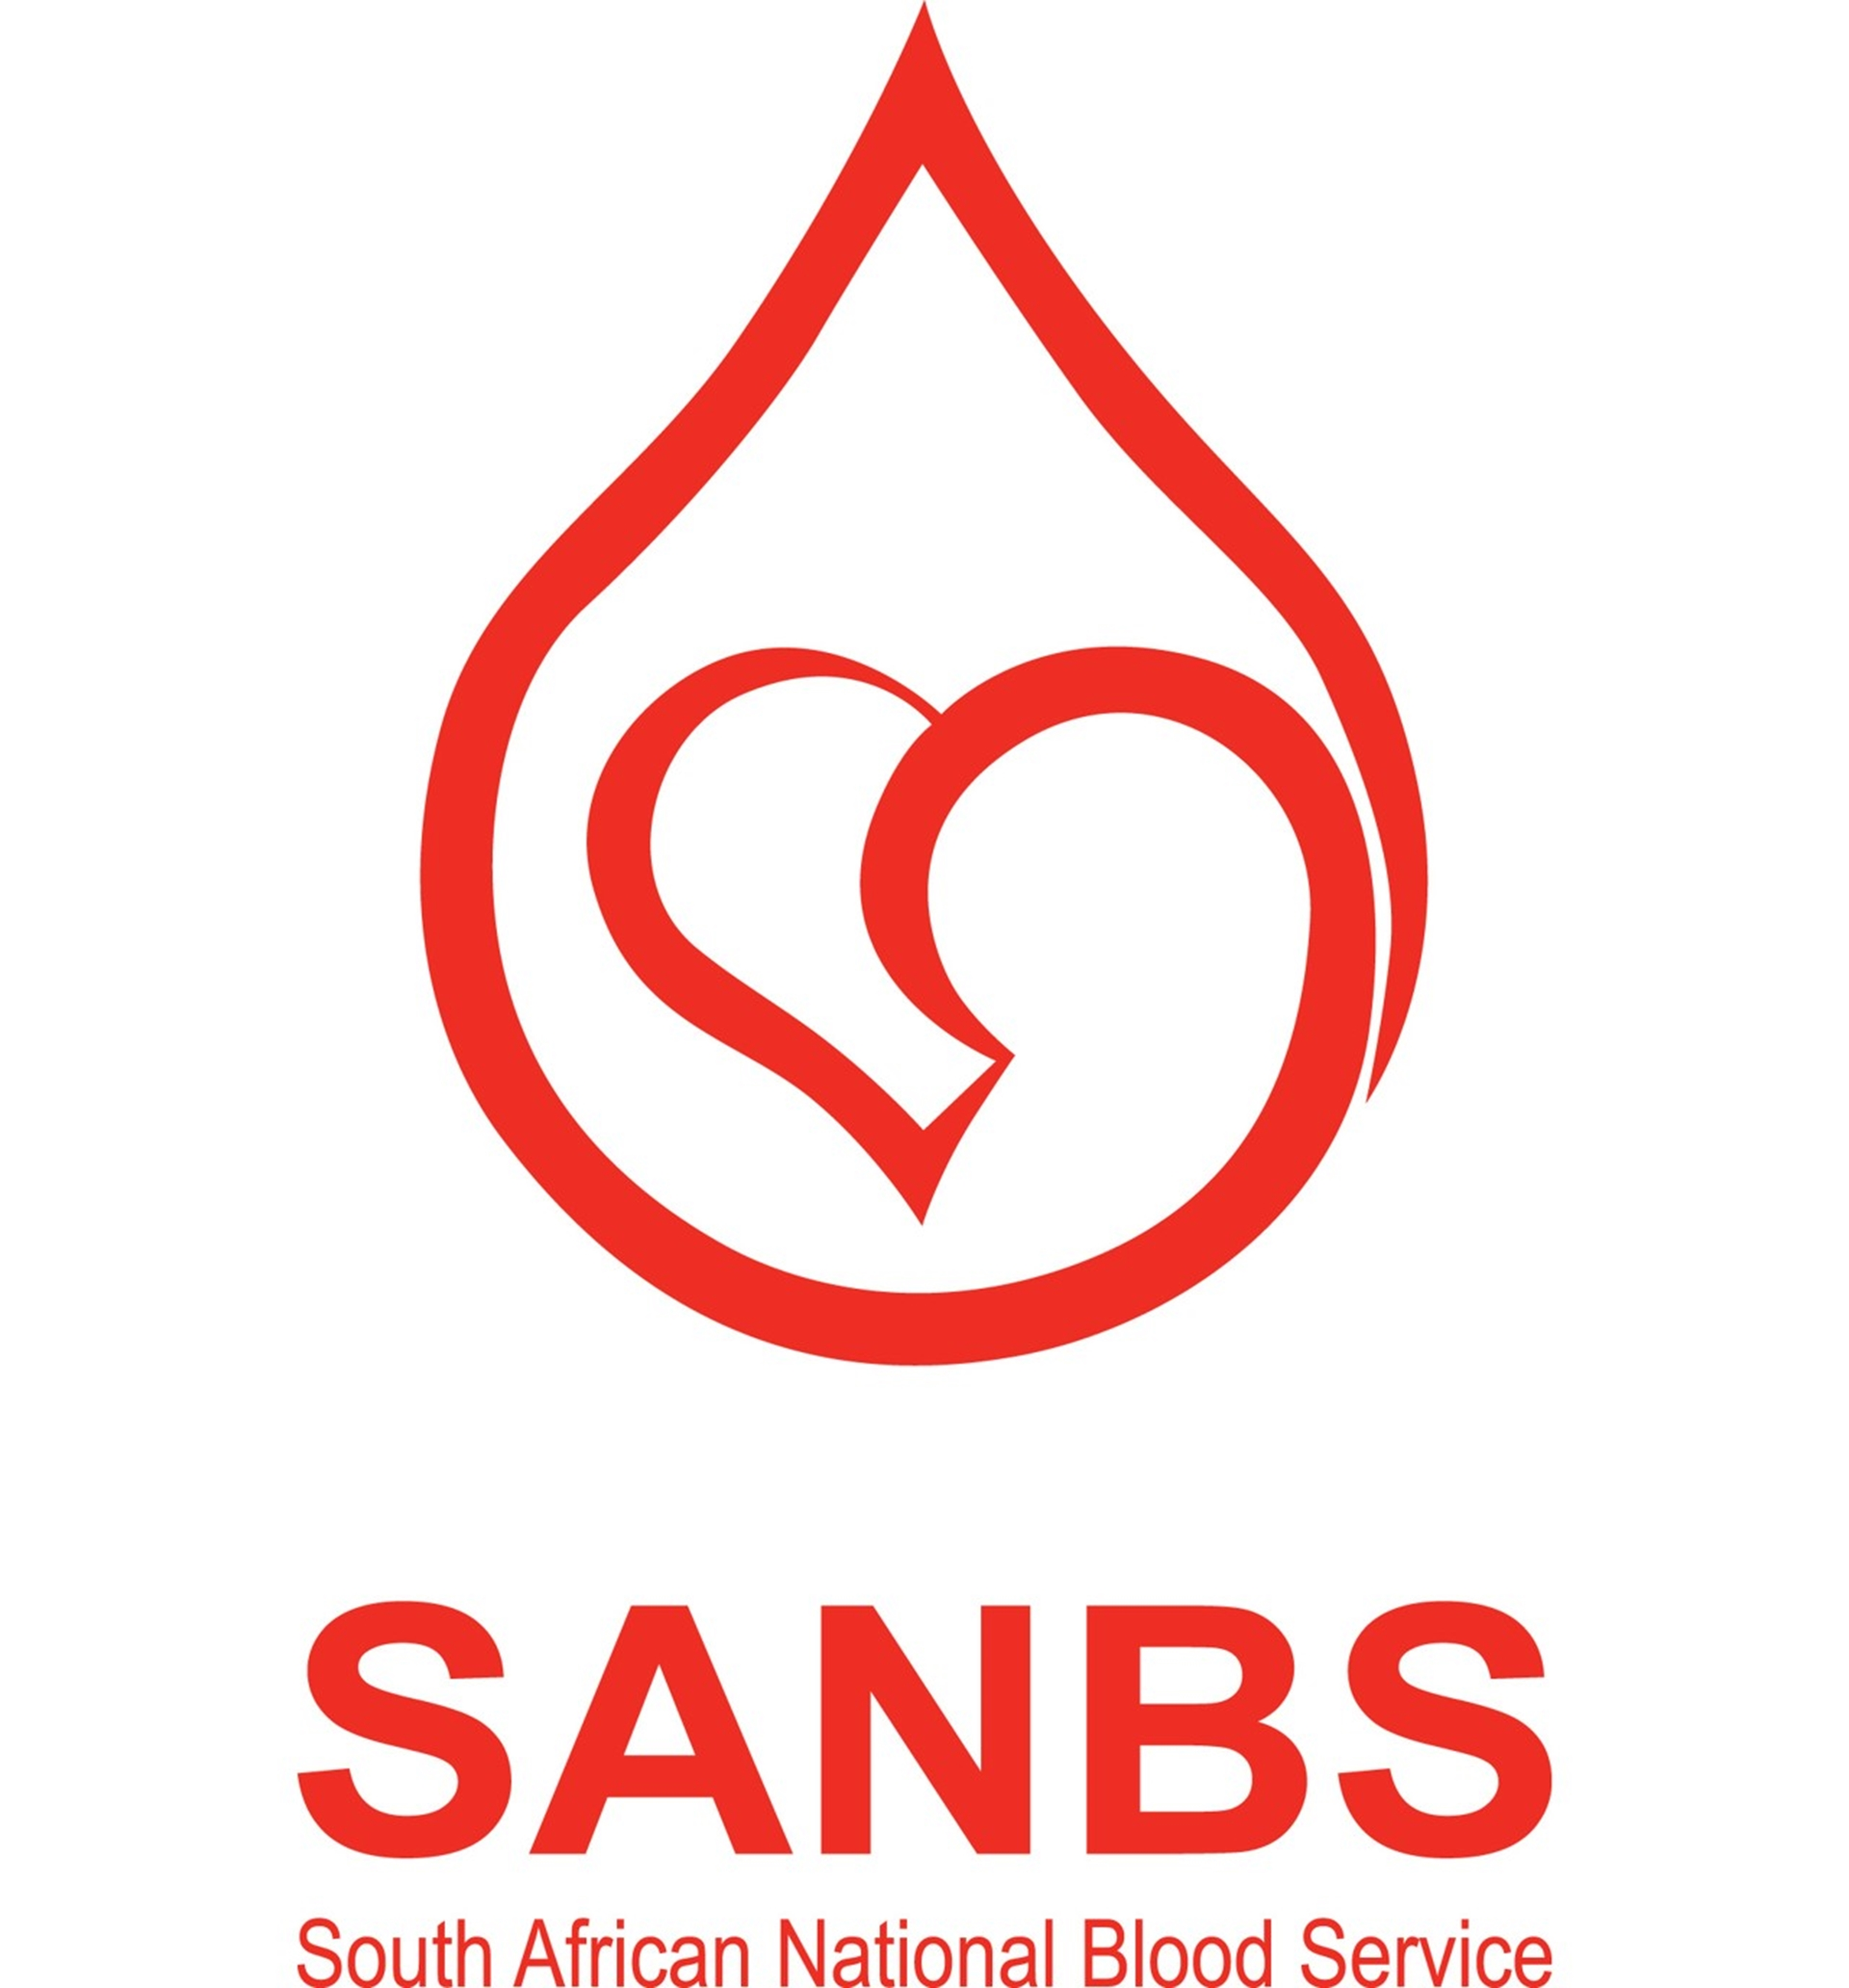 South African National Blood Service